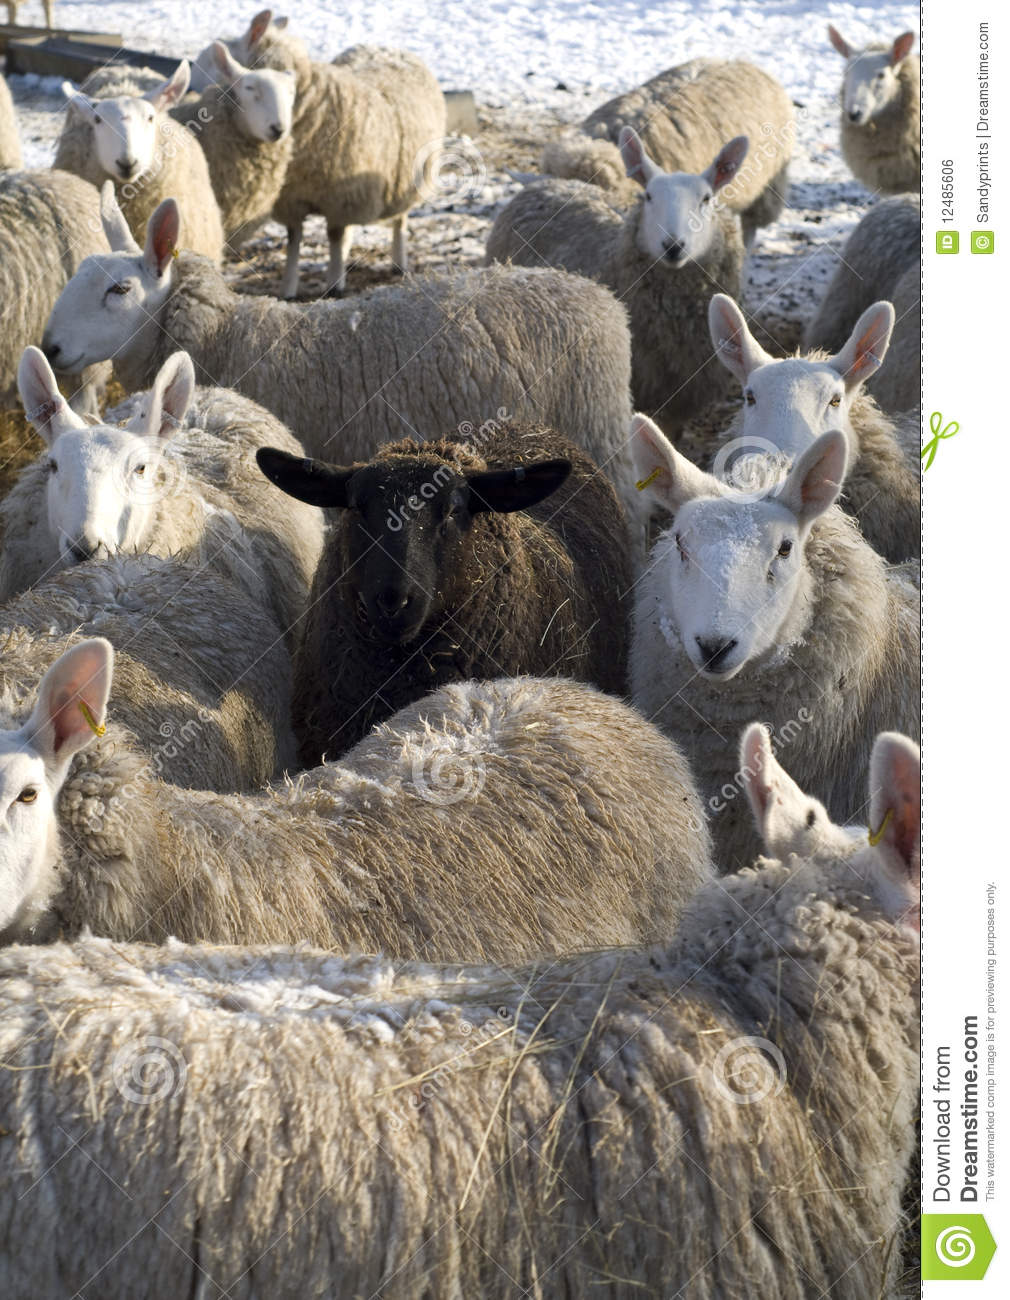 The black sheep of the flock.